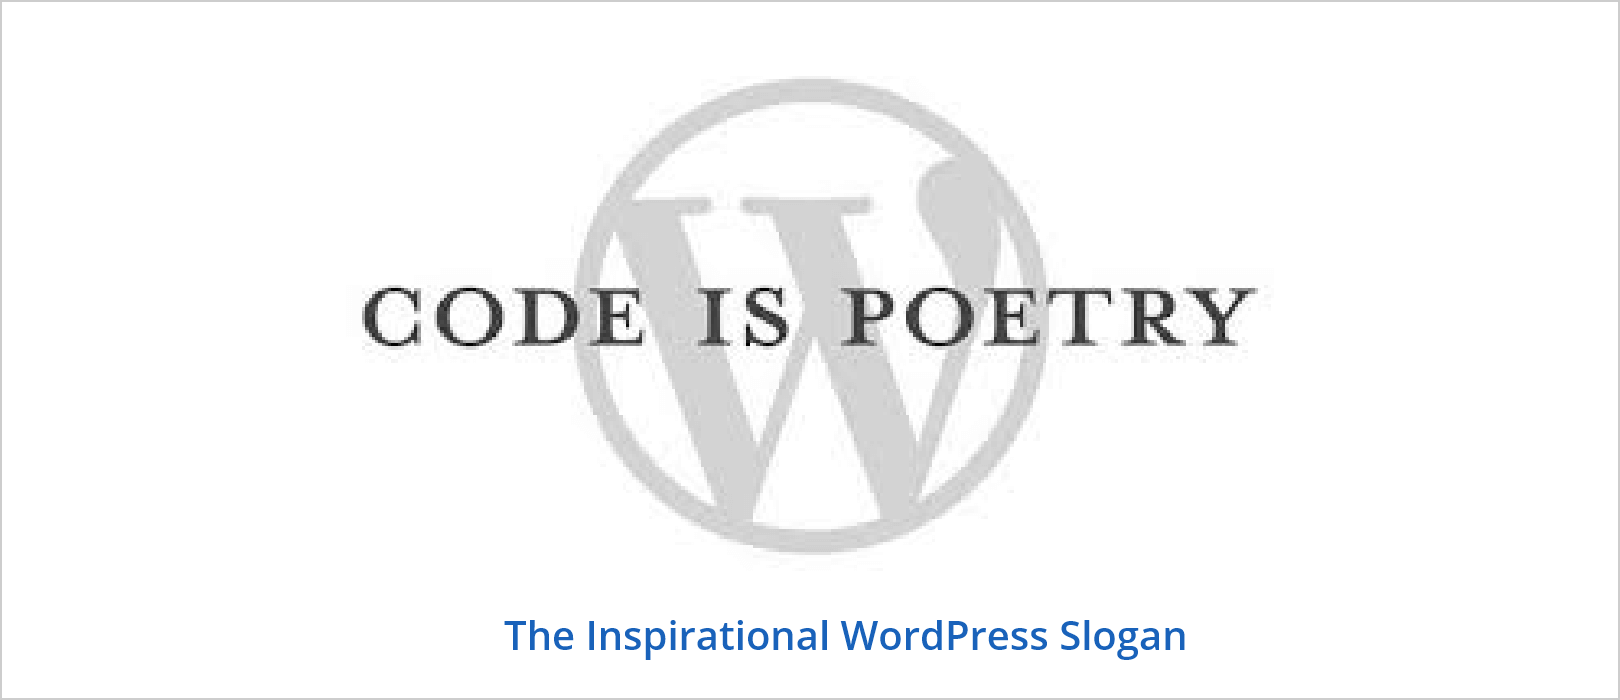 Code is poetry slogan